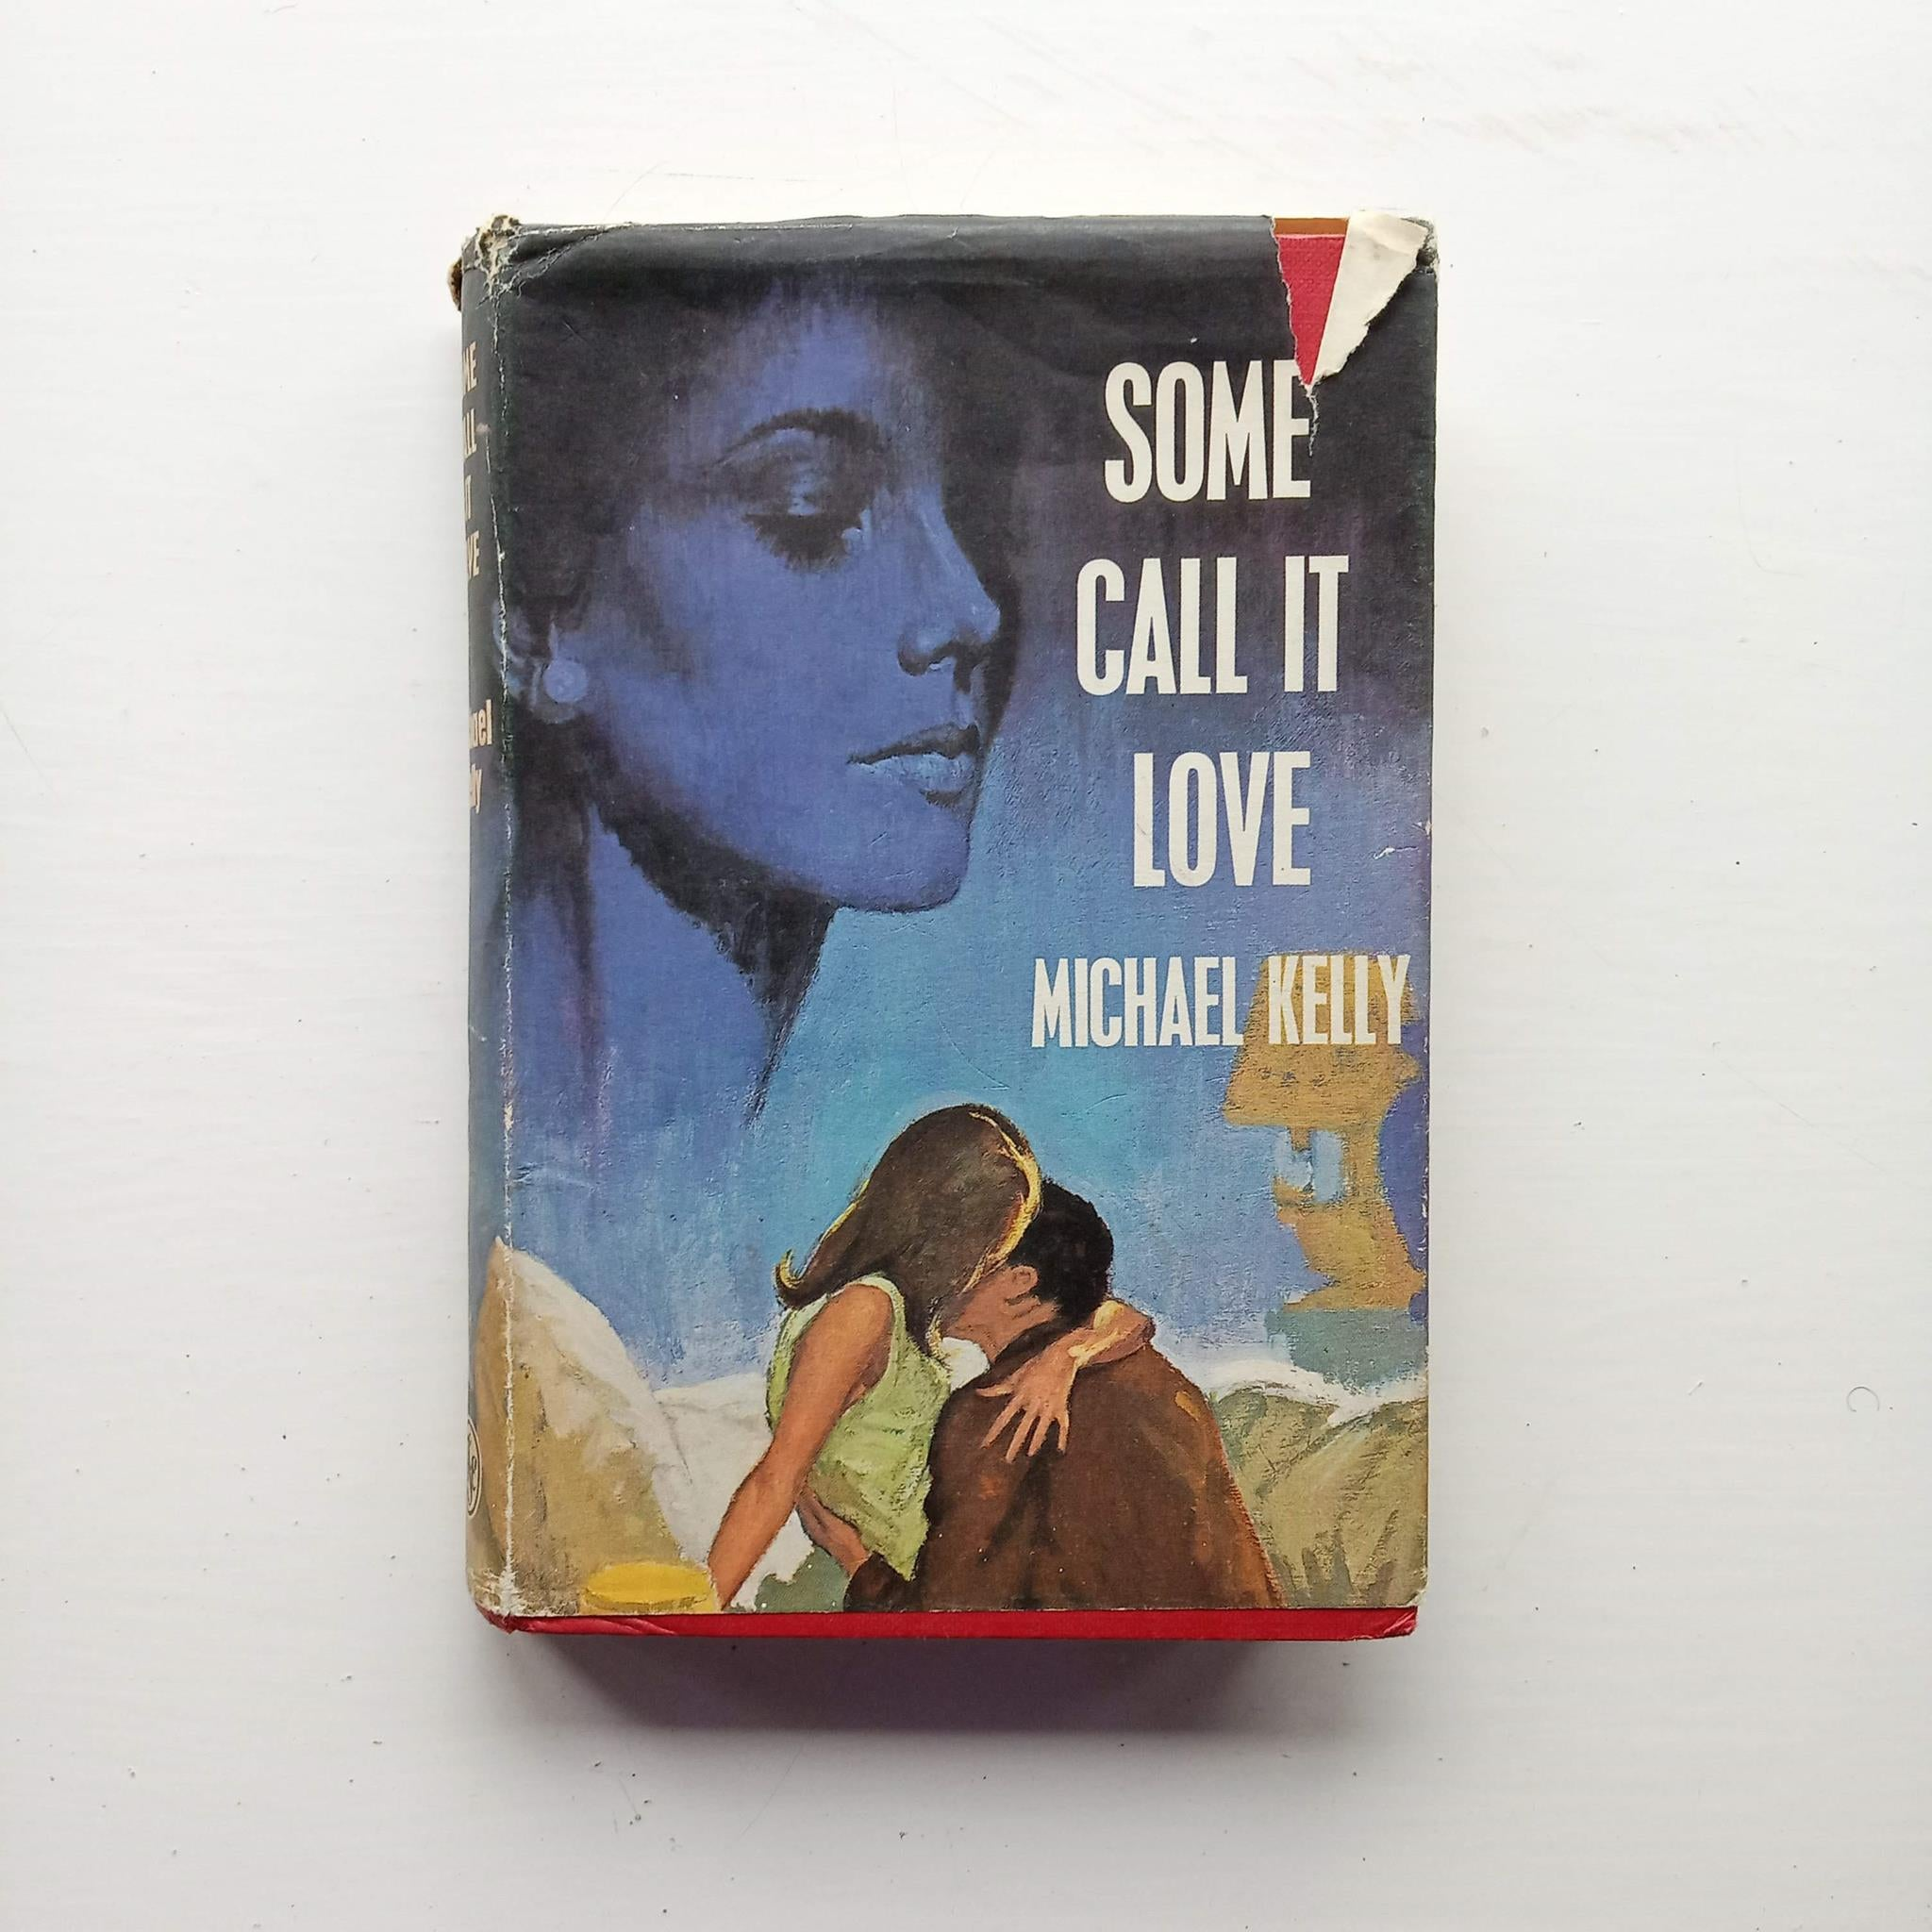 Some Call it Love by Michael Kelly